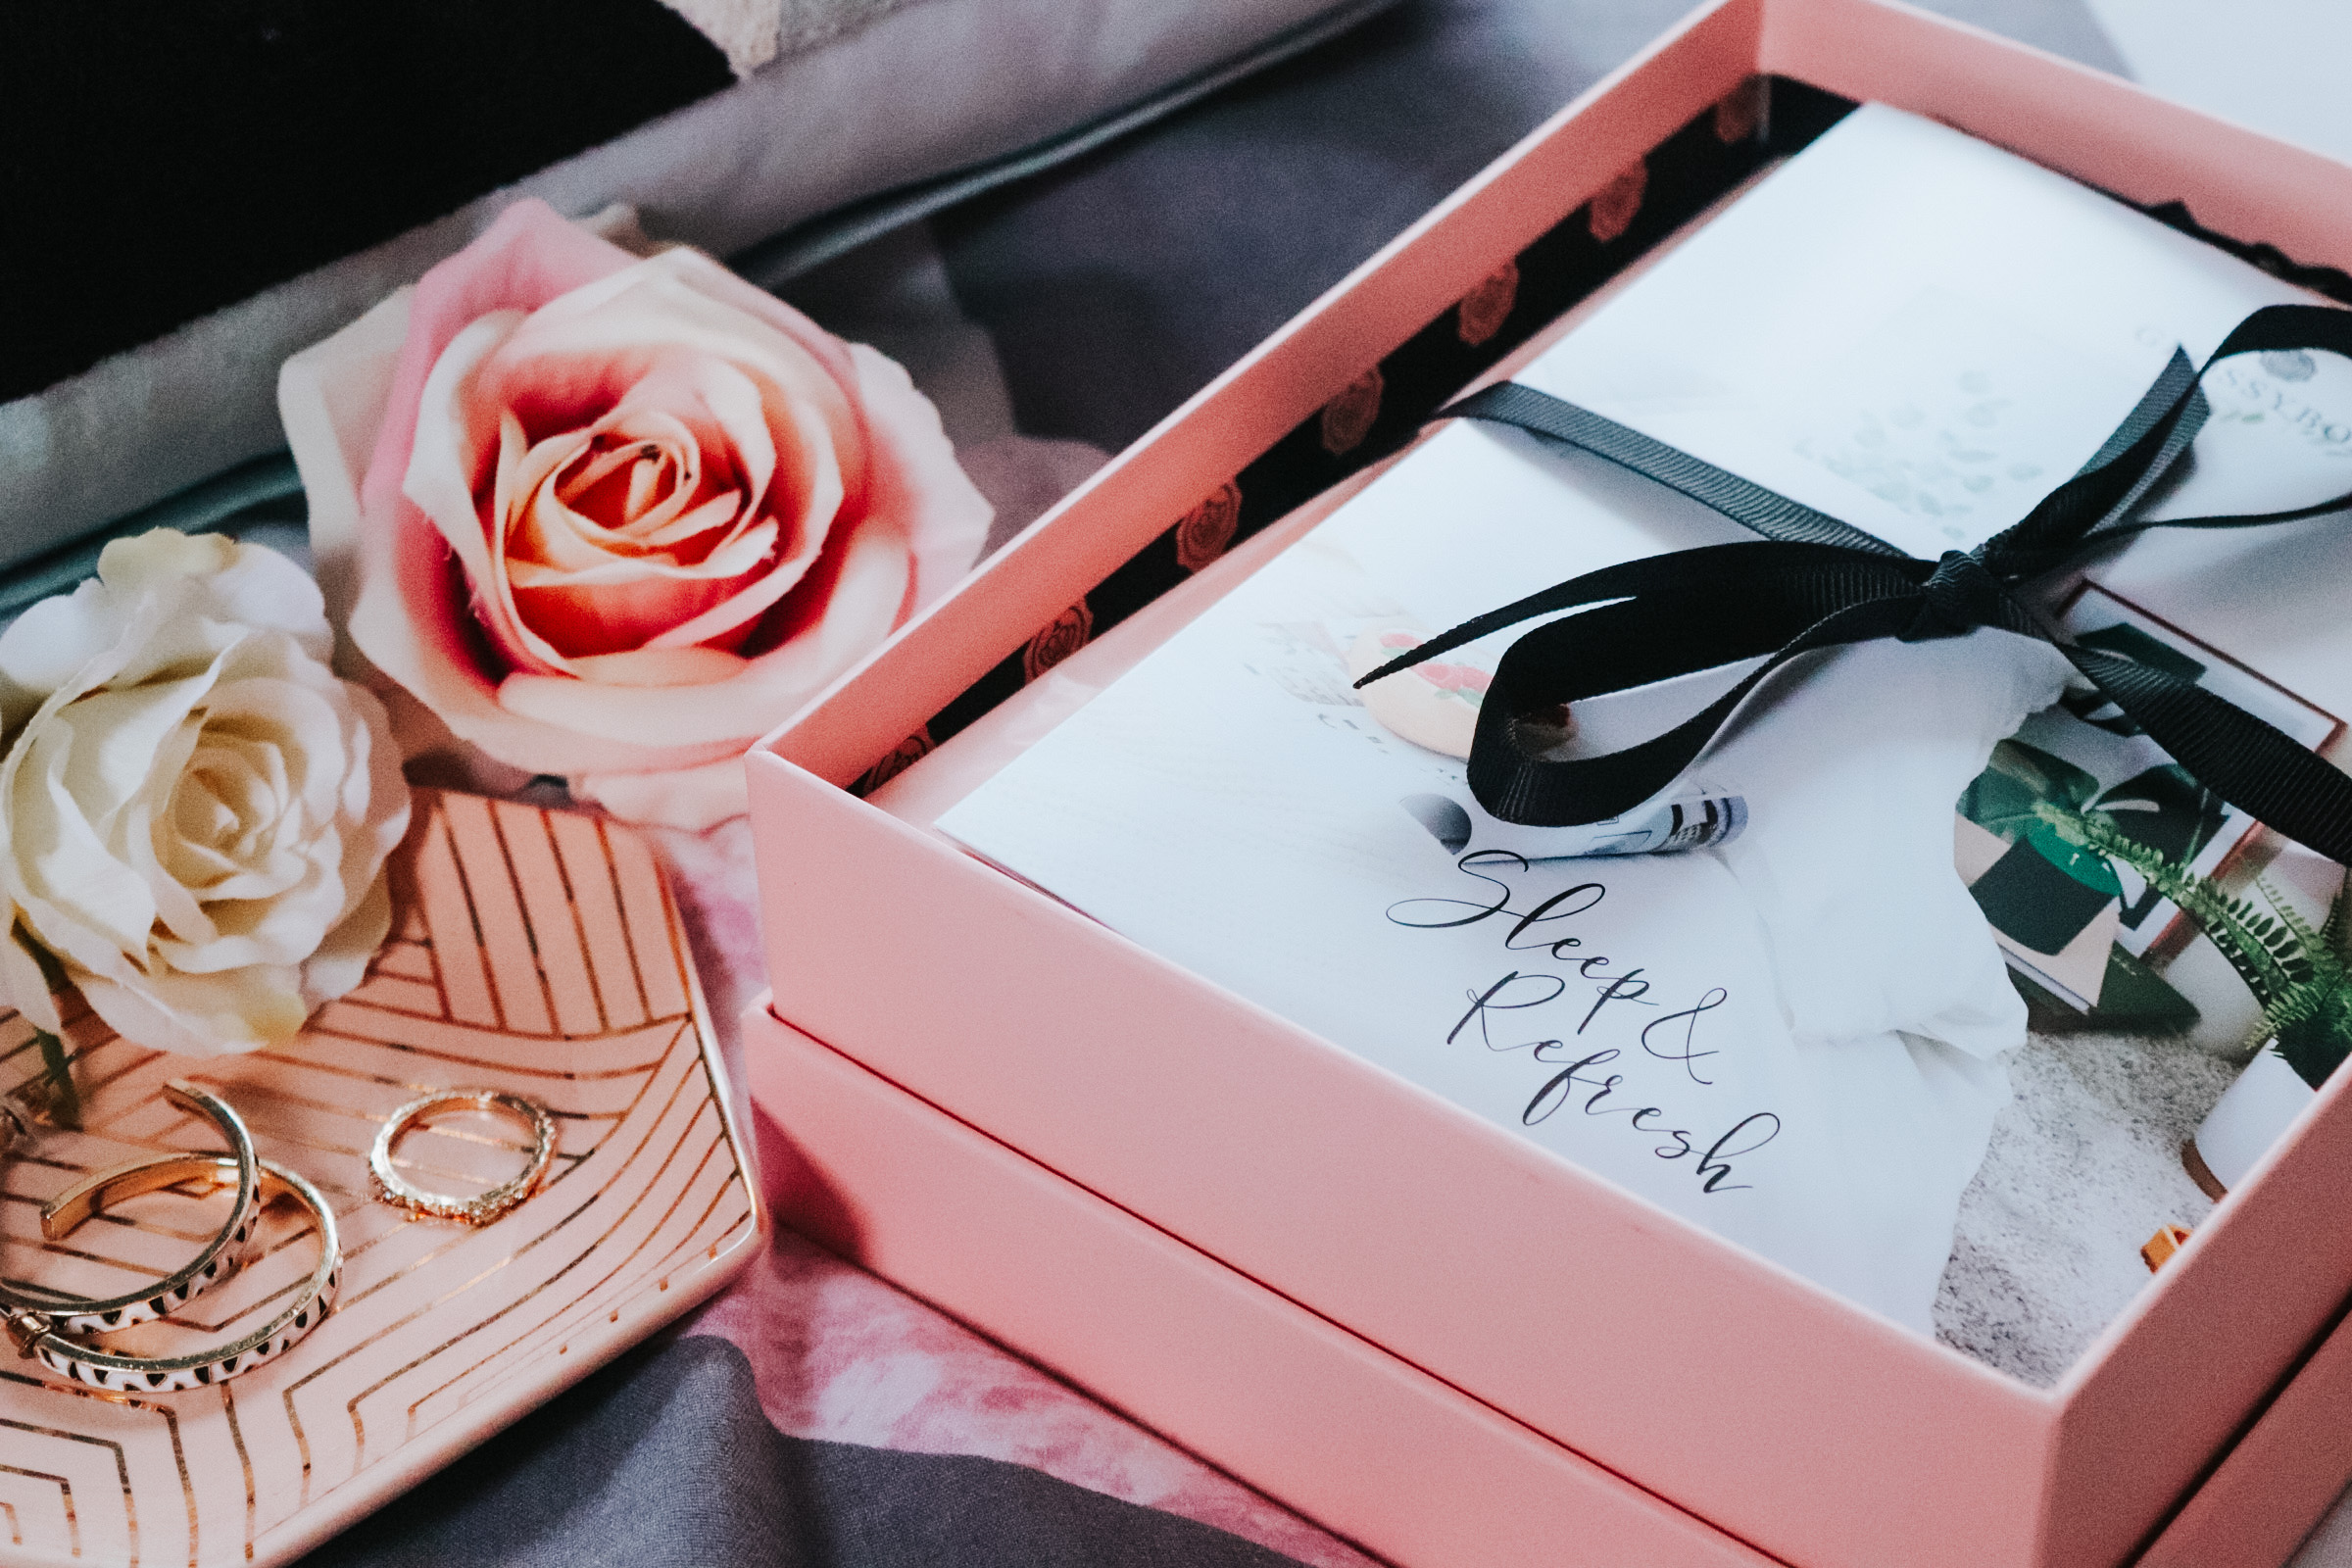 GLOSSYBOX JANUARY 2020: SLEEP & REFRESH – REVIEW